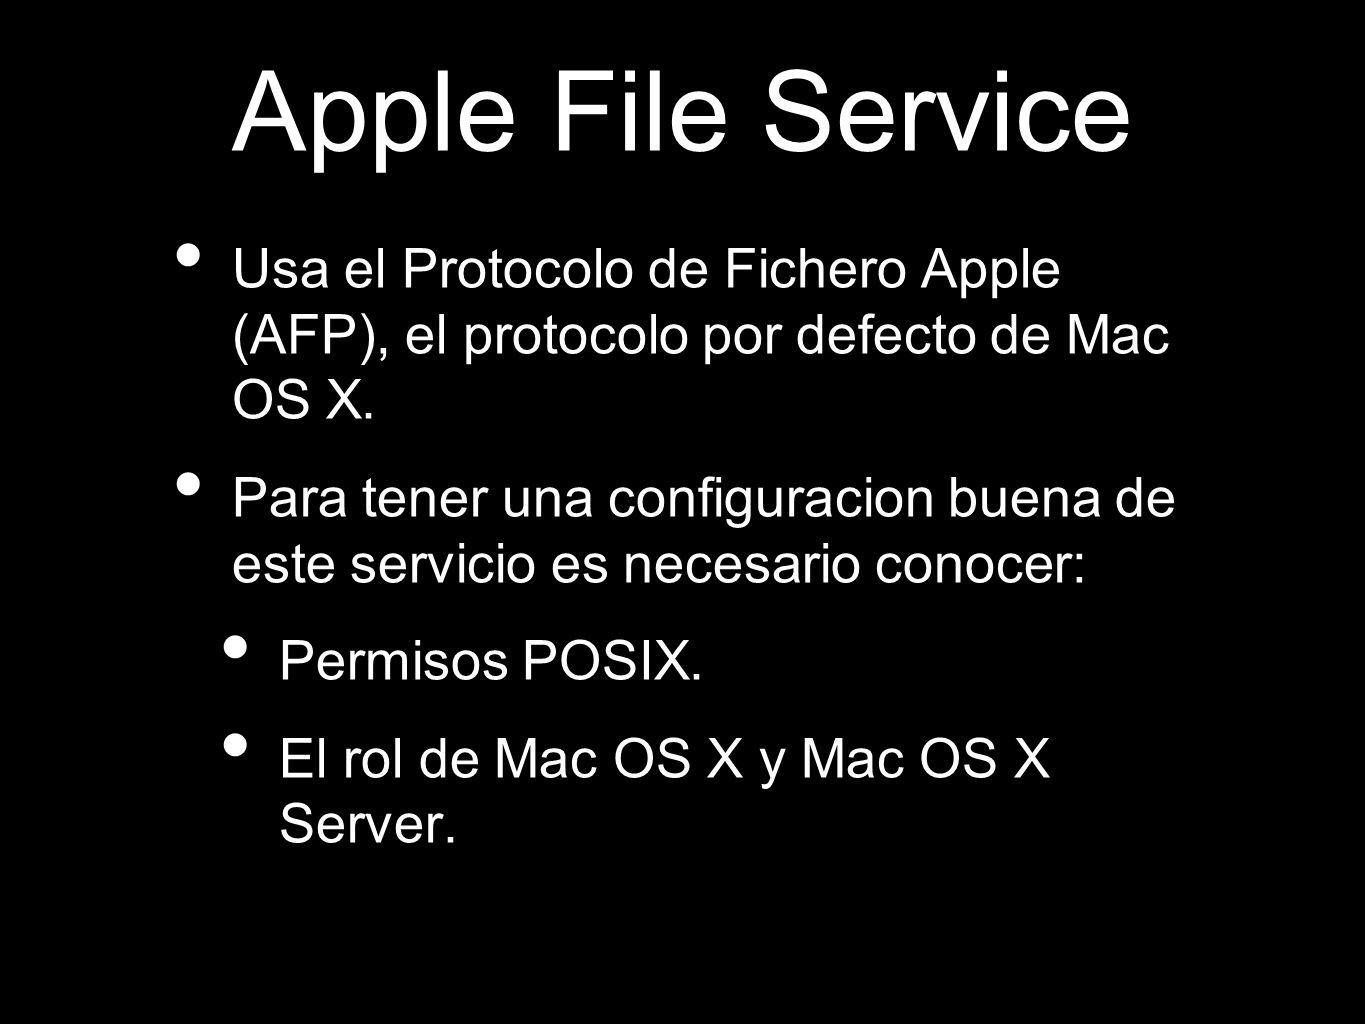 Apple File Service Usa el Protocolo de Fichero Apple (AFP), el protocolo por defecto de Mac OS X.